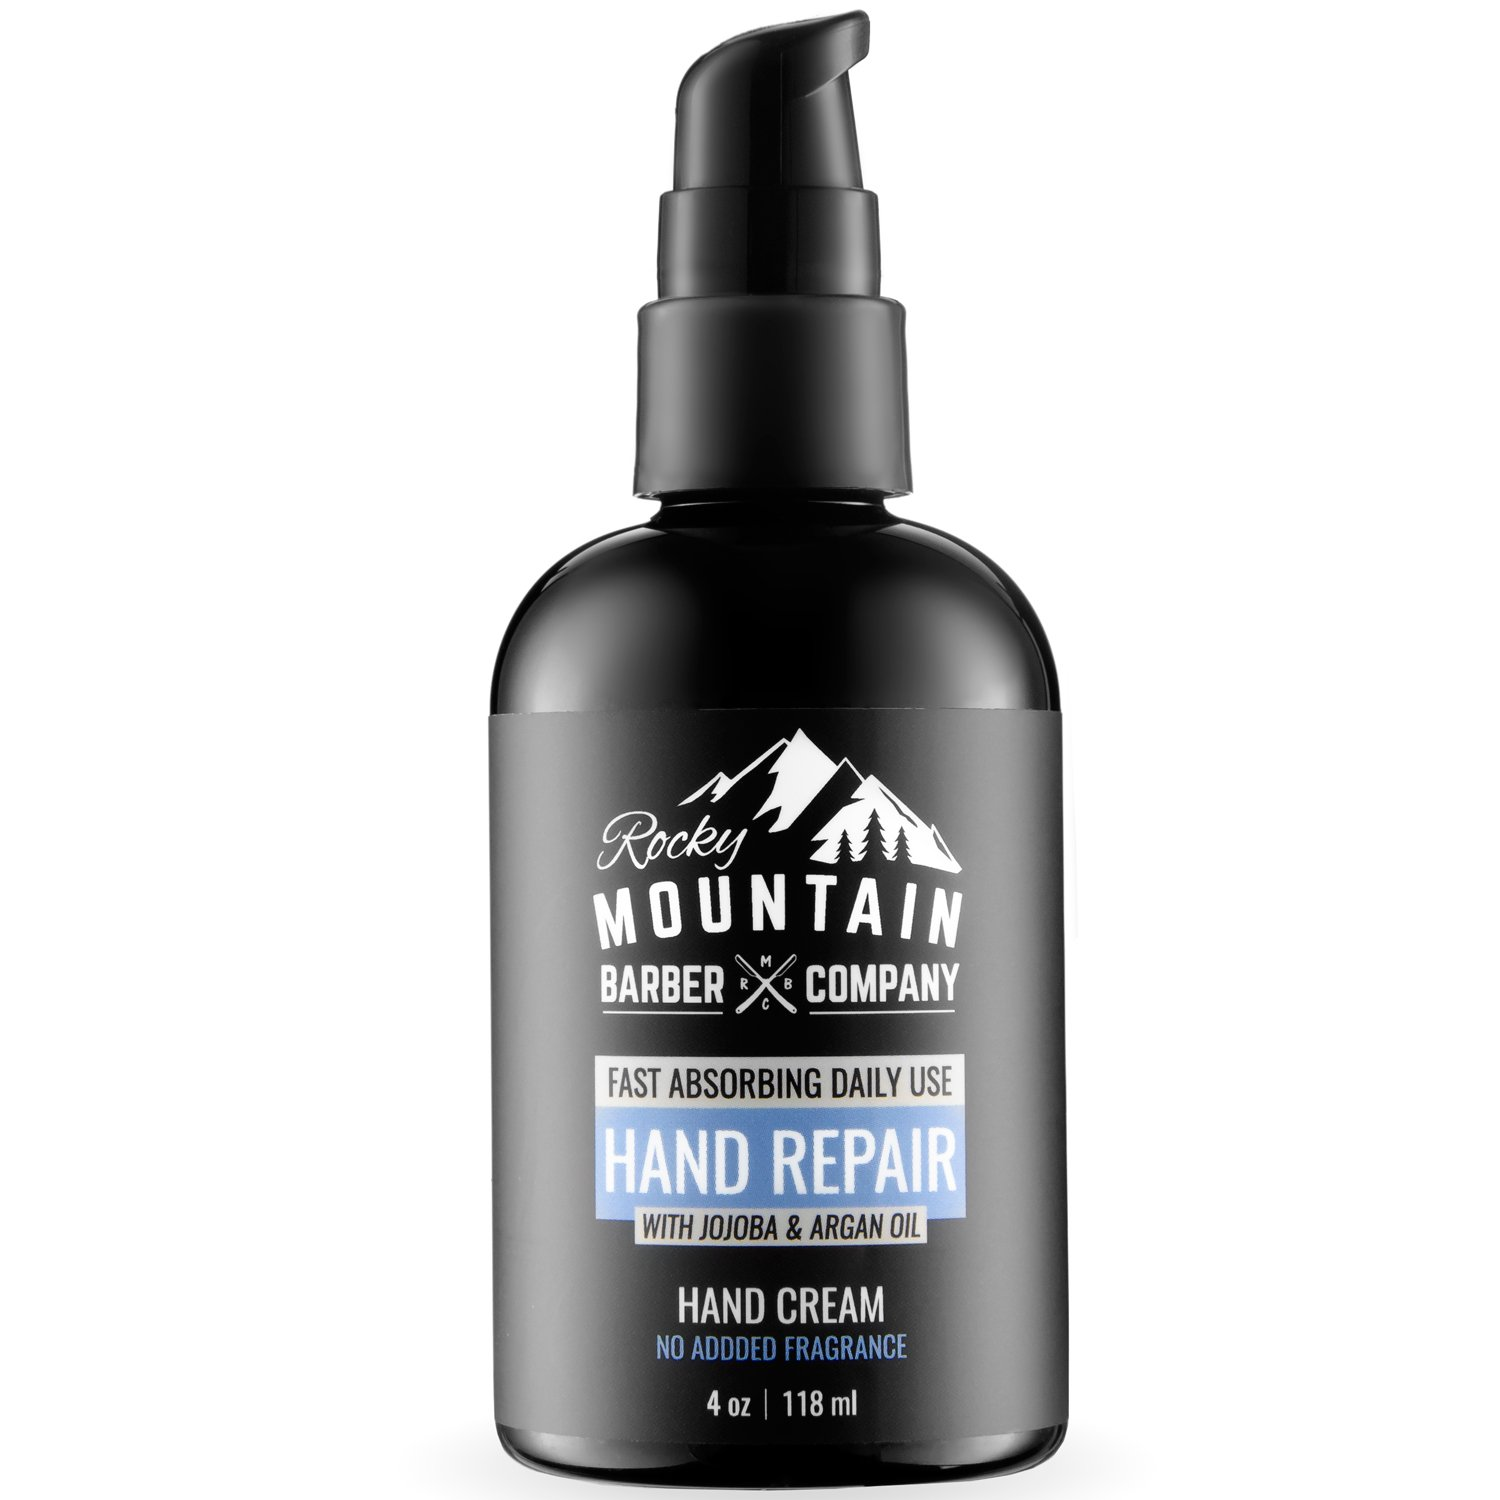 Hand Moisturizer - Hydrates, Protects & Heals Dry, Cracked Hands - Contains Natural Ingredients Like Argan Oil & Jojoba Oil - No Added Fragrance - 4 oz by Rocky Mountain Barber Company